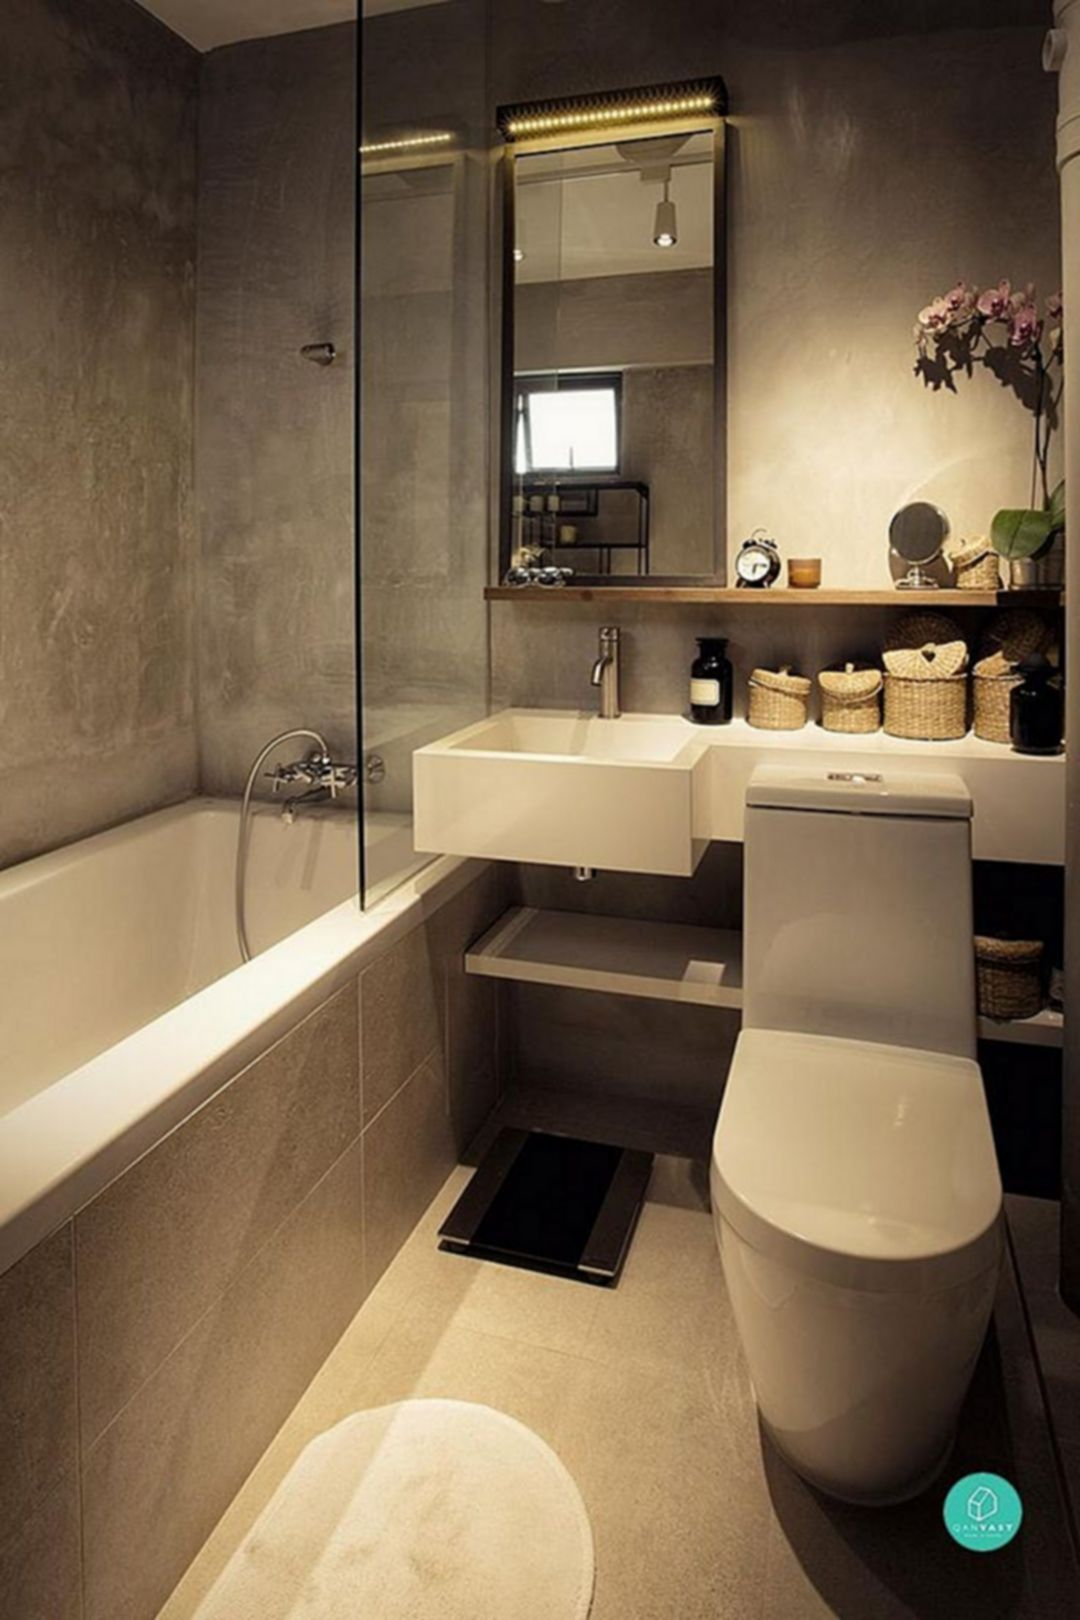 25 Stylish Hotel Bathroom Design Ideas That Can Be Applied To Your Home Small Bathroom Remodel Bathroom Interior Design Best Bathroom Designs